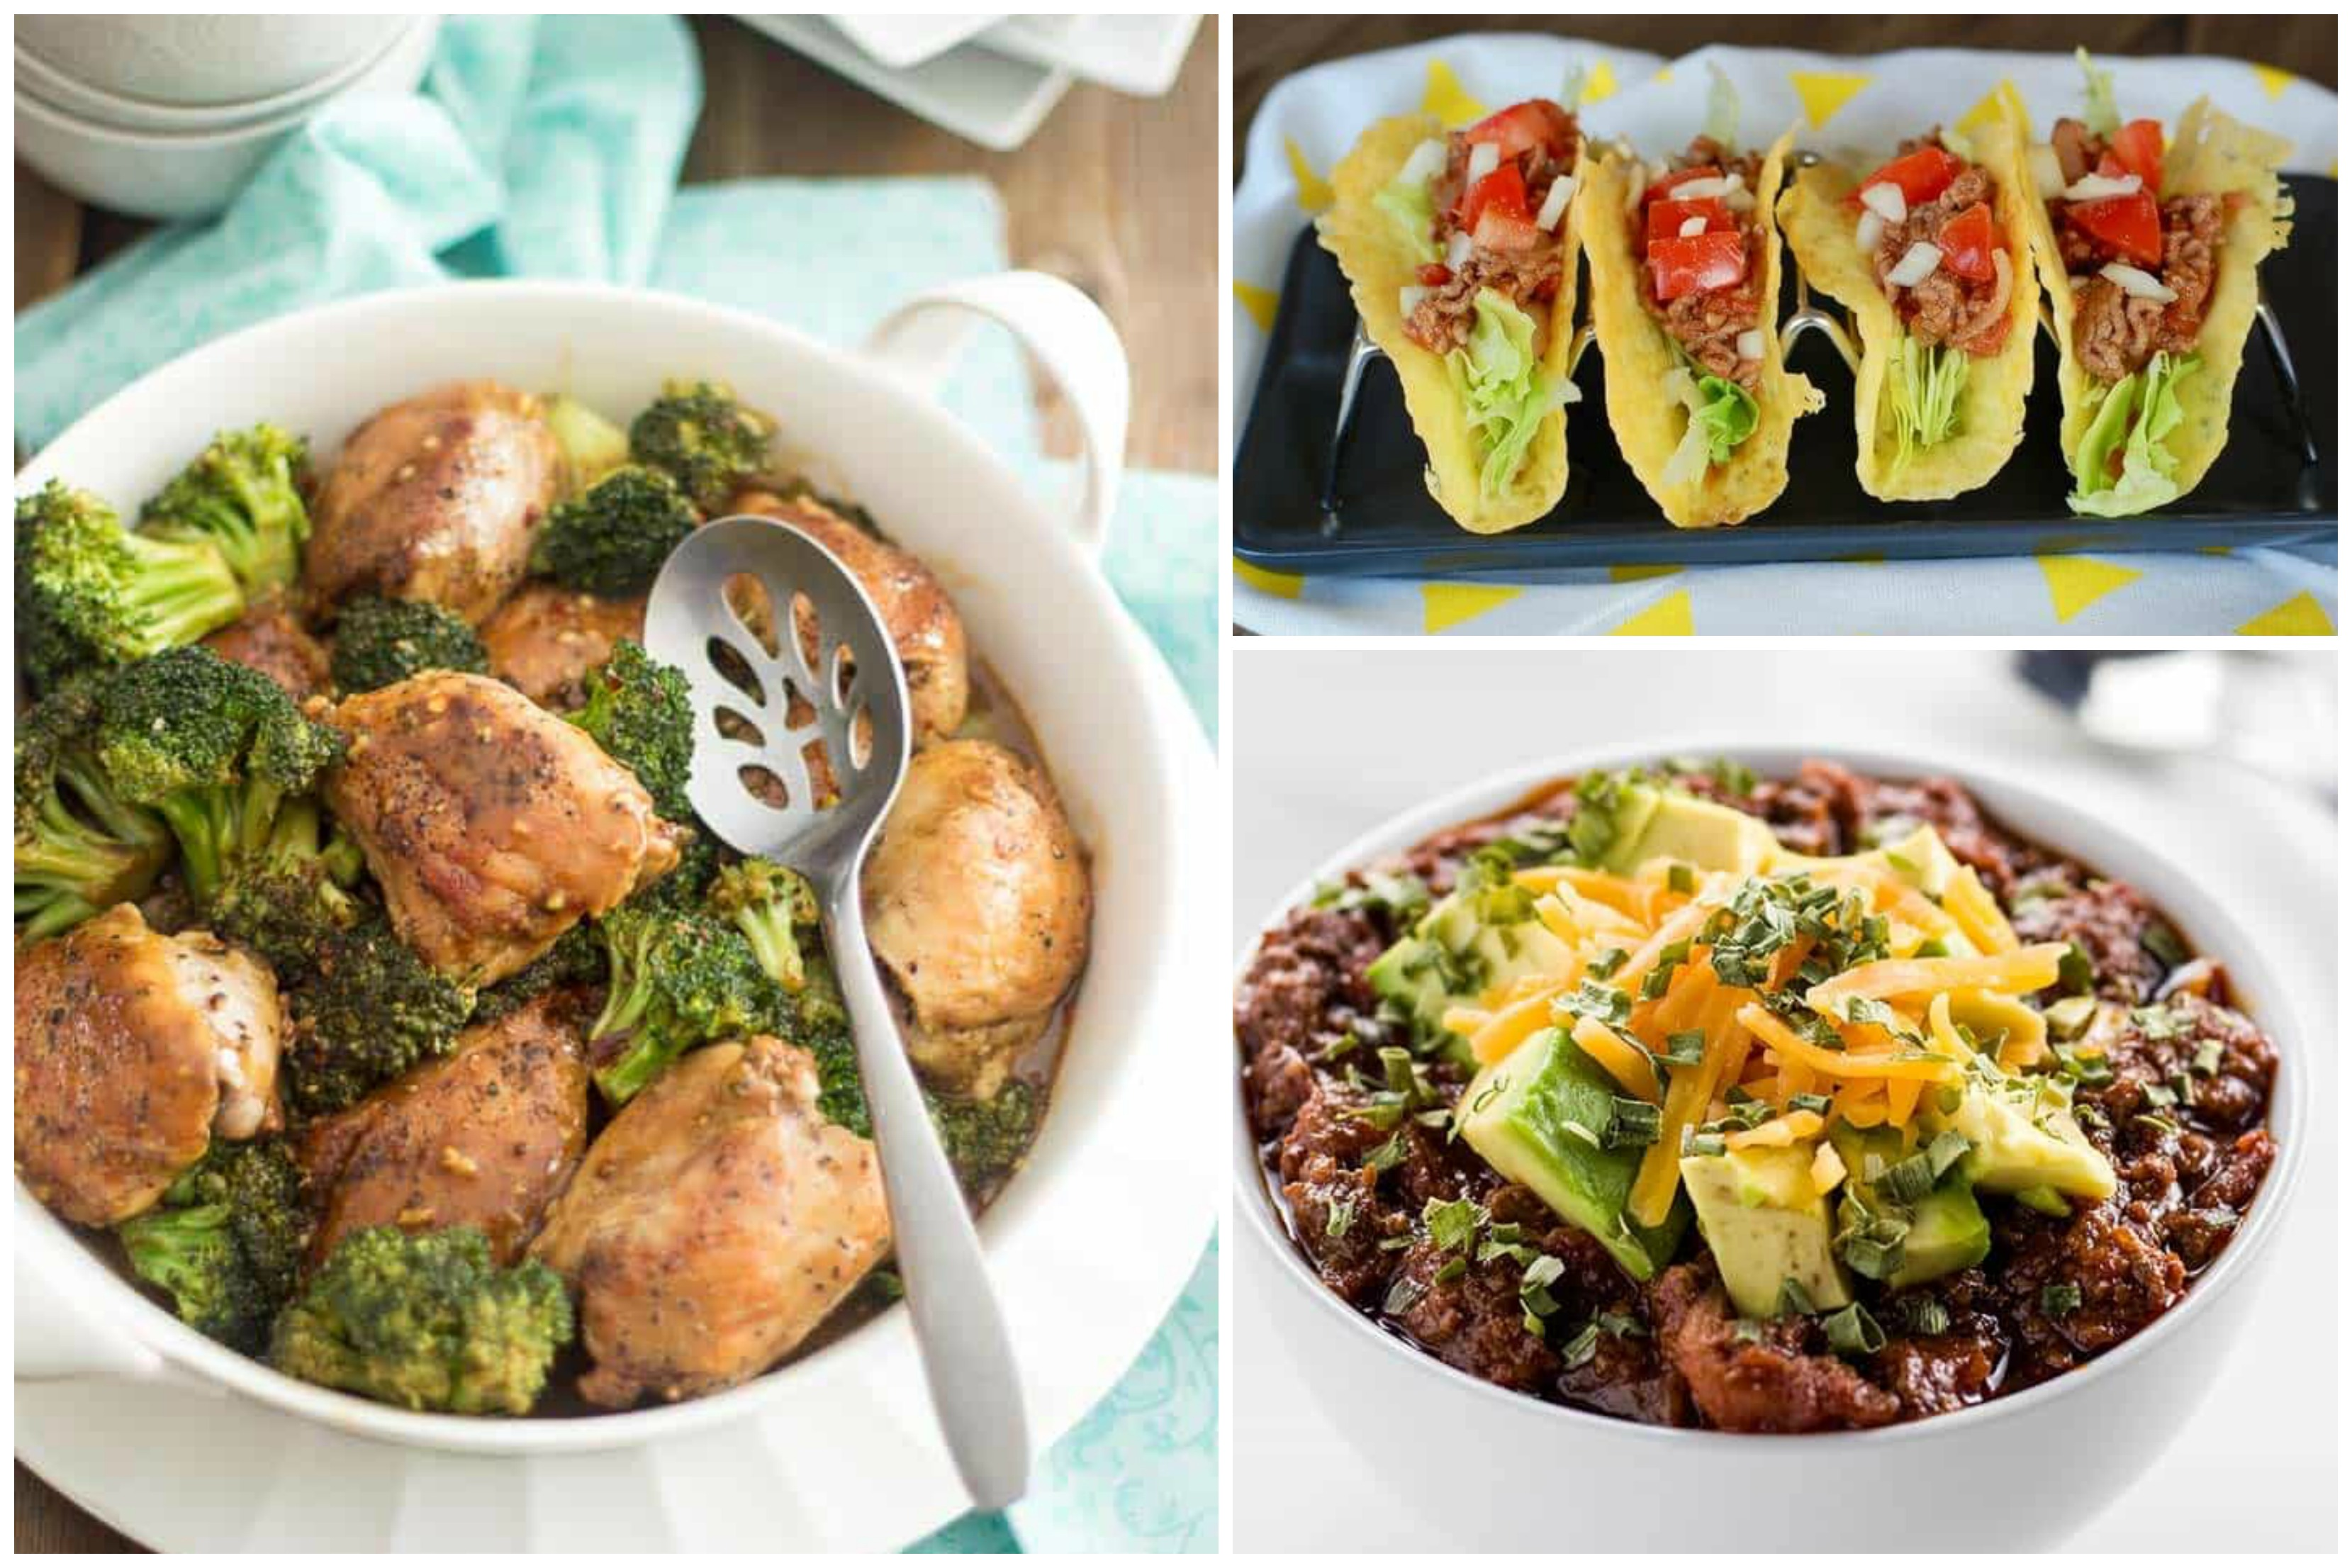 Keto Recipes 11 Delicious Low Carb Meals To Help You Lose Weight Fast